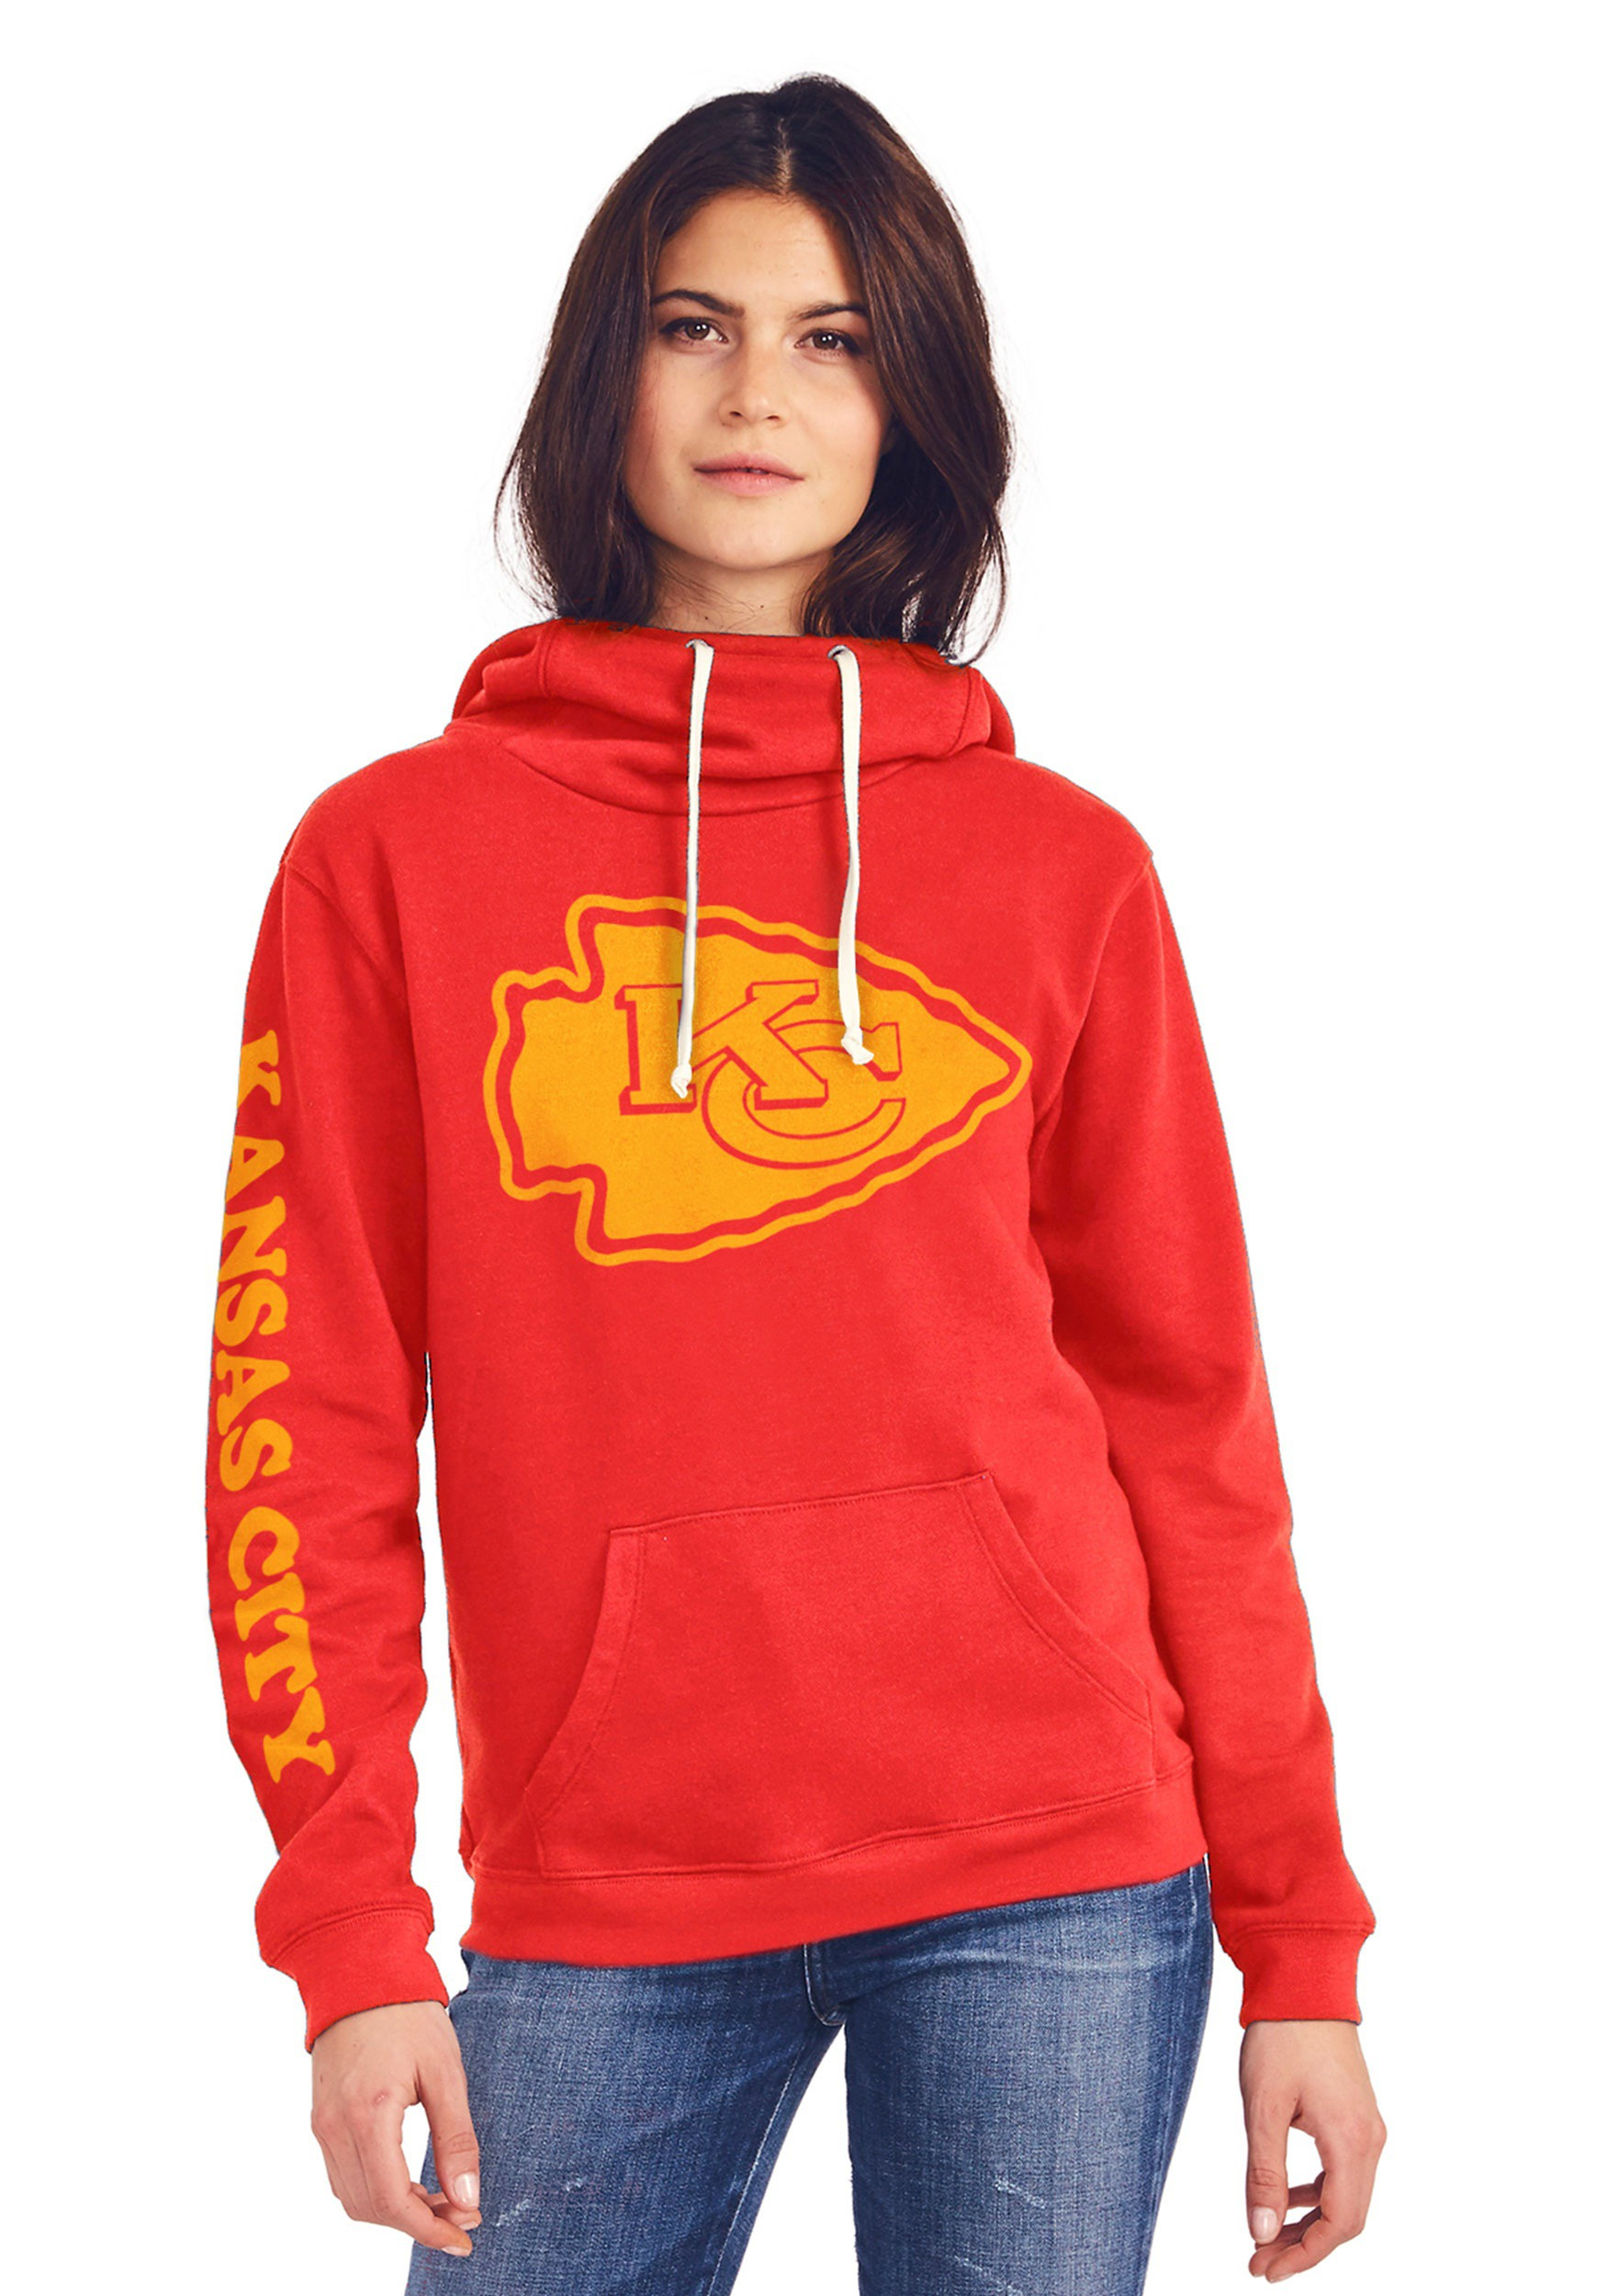 Kansas City Chiefs Women's Cowl Neck Hooded Sweatshirt